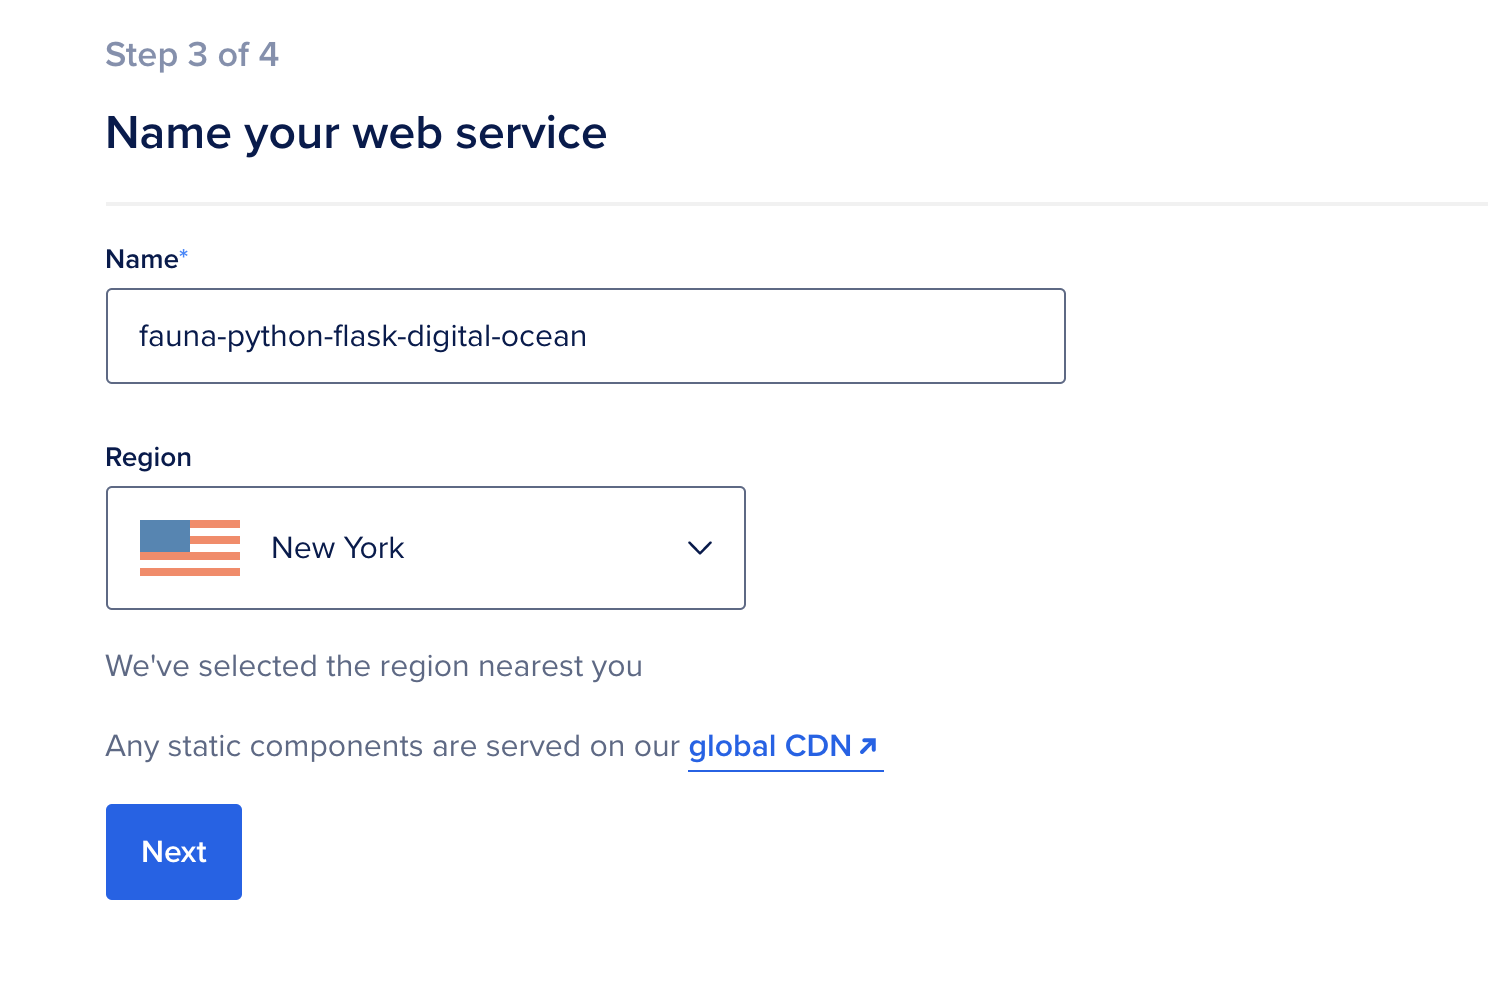 Configuring the name of the app and deploy region